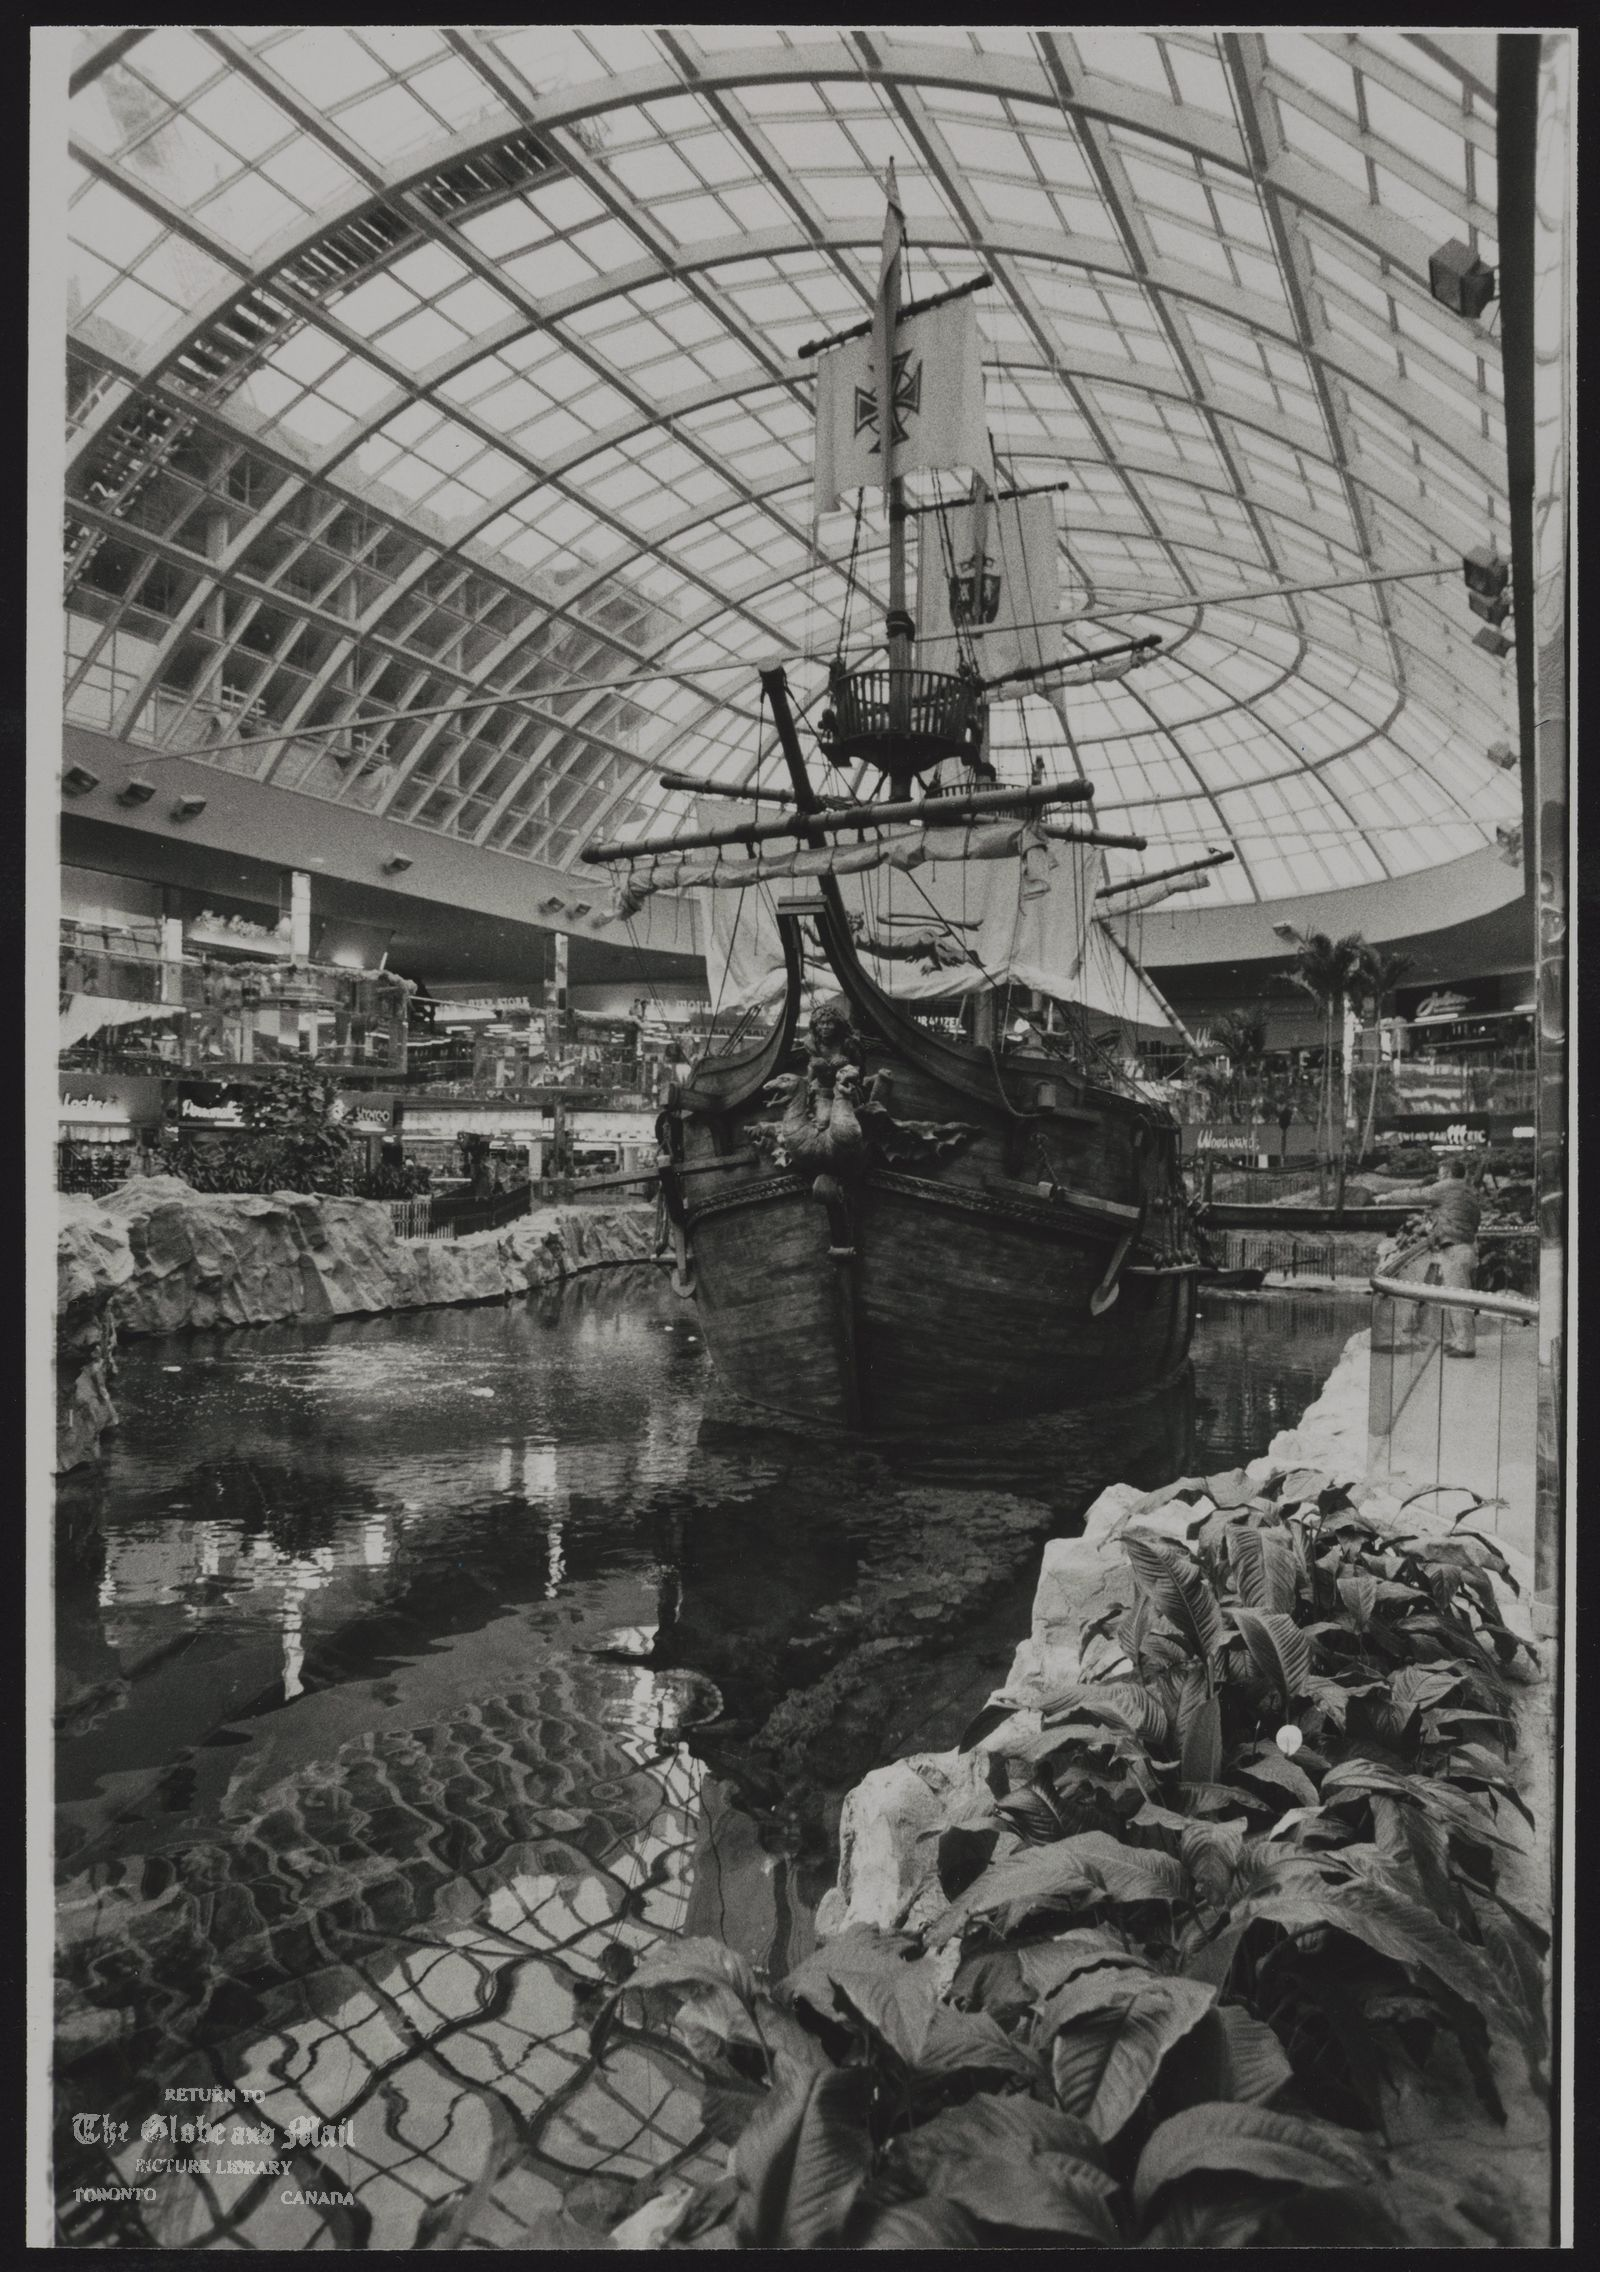 The notes transcribed from the back of this photograph are as follows: EDMONTON MALL, WEST